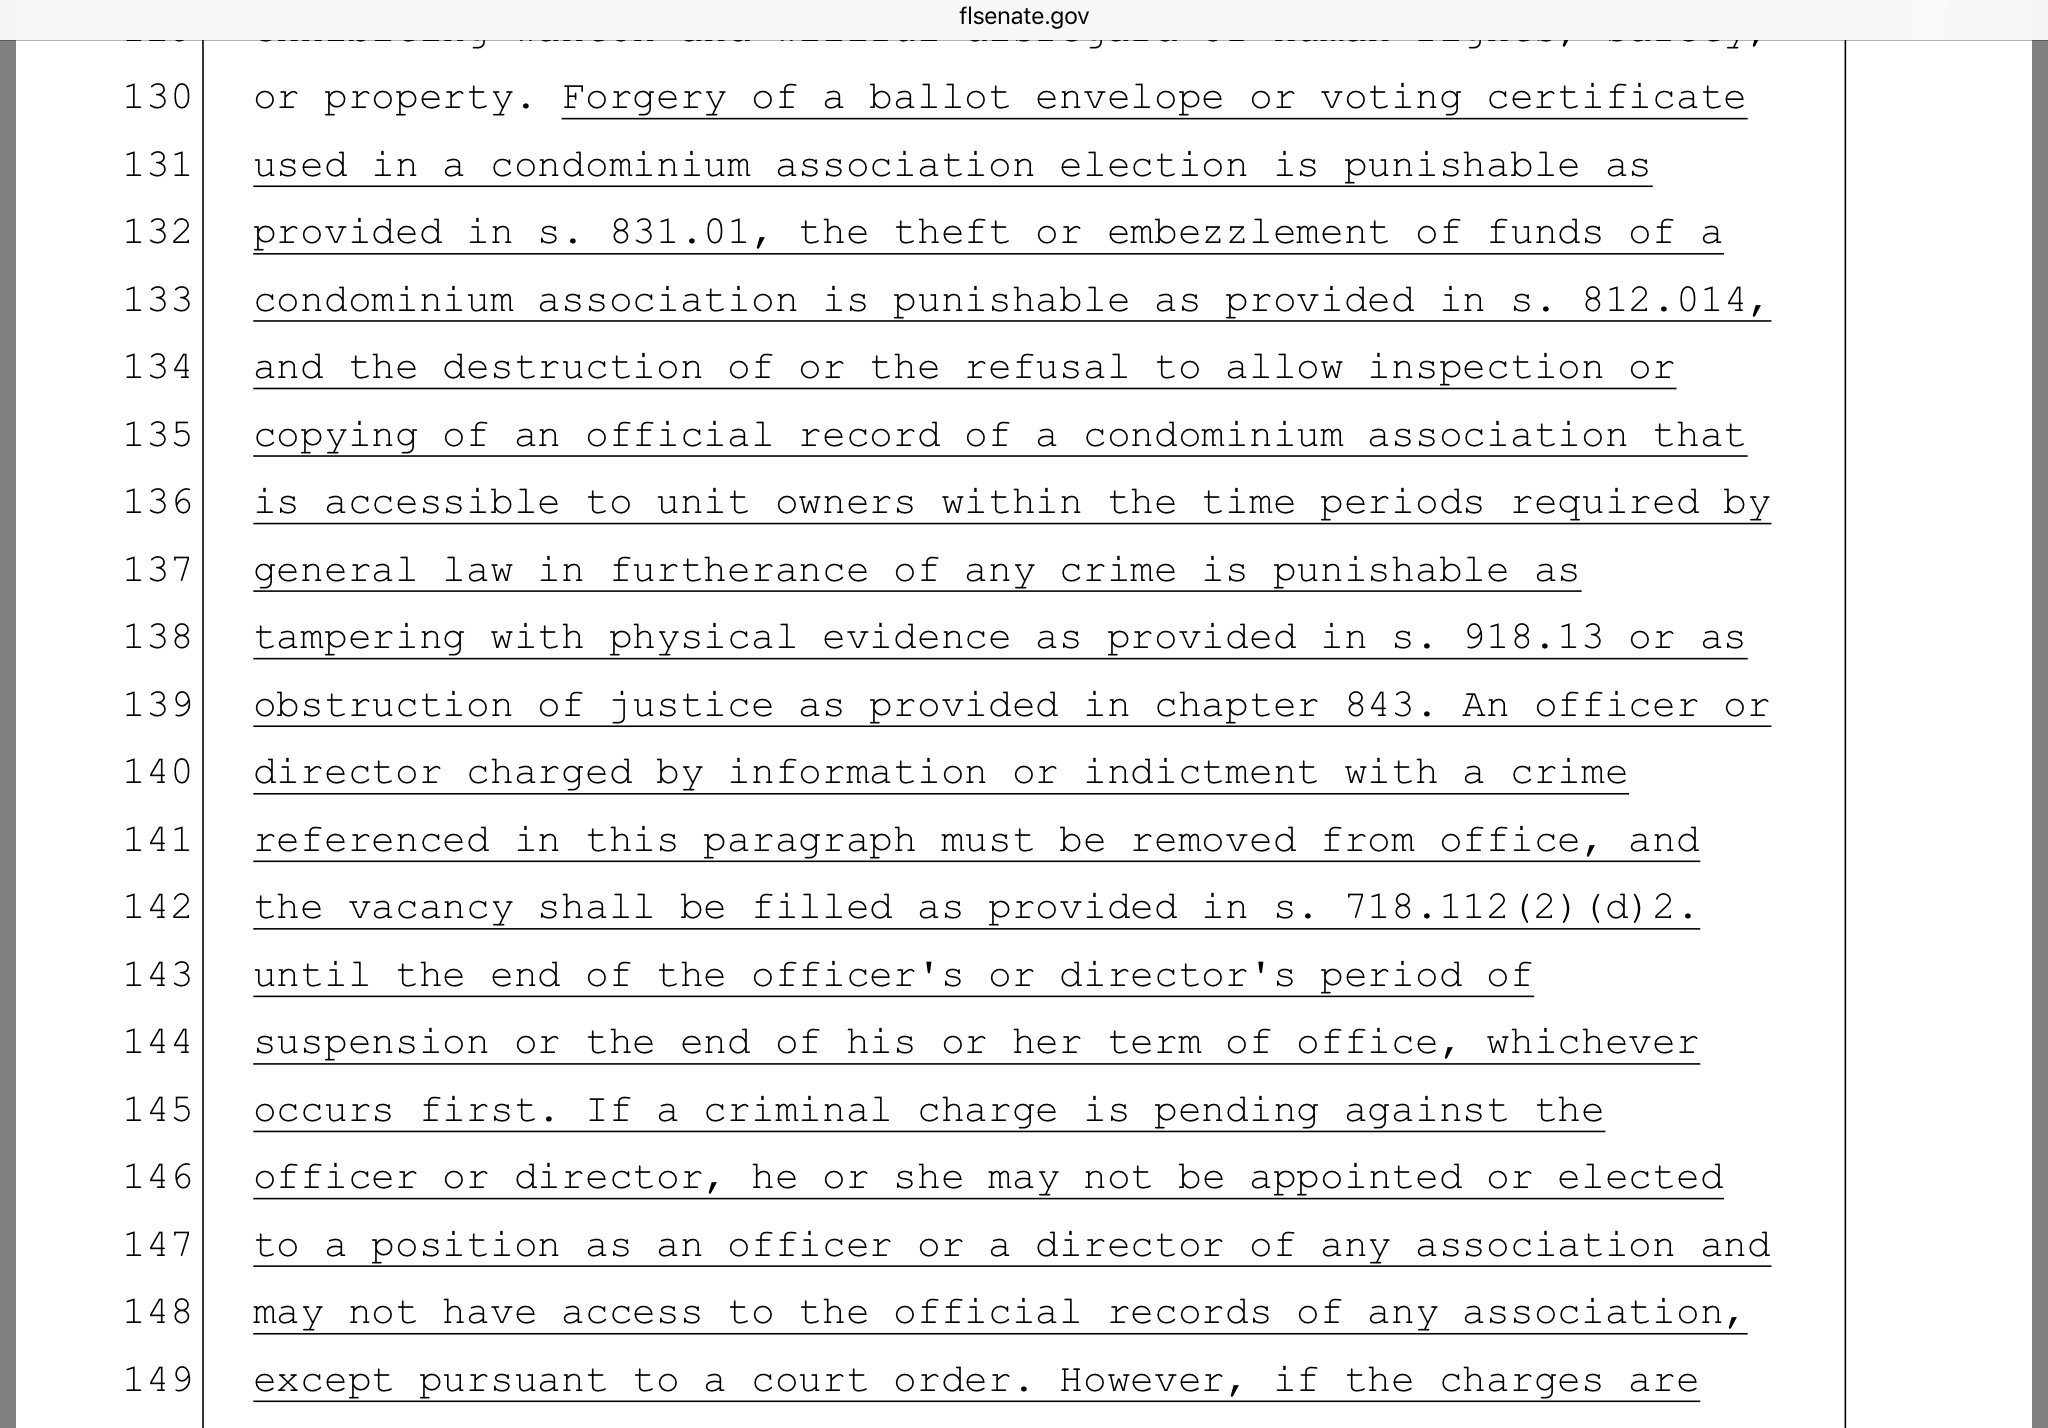 Fl legislature passes condo bill including criminal penalties notice that refusal to provide access to records if not related to a provable crime would not result in a criminal penalty 1betcityfo Image collections